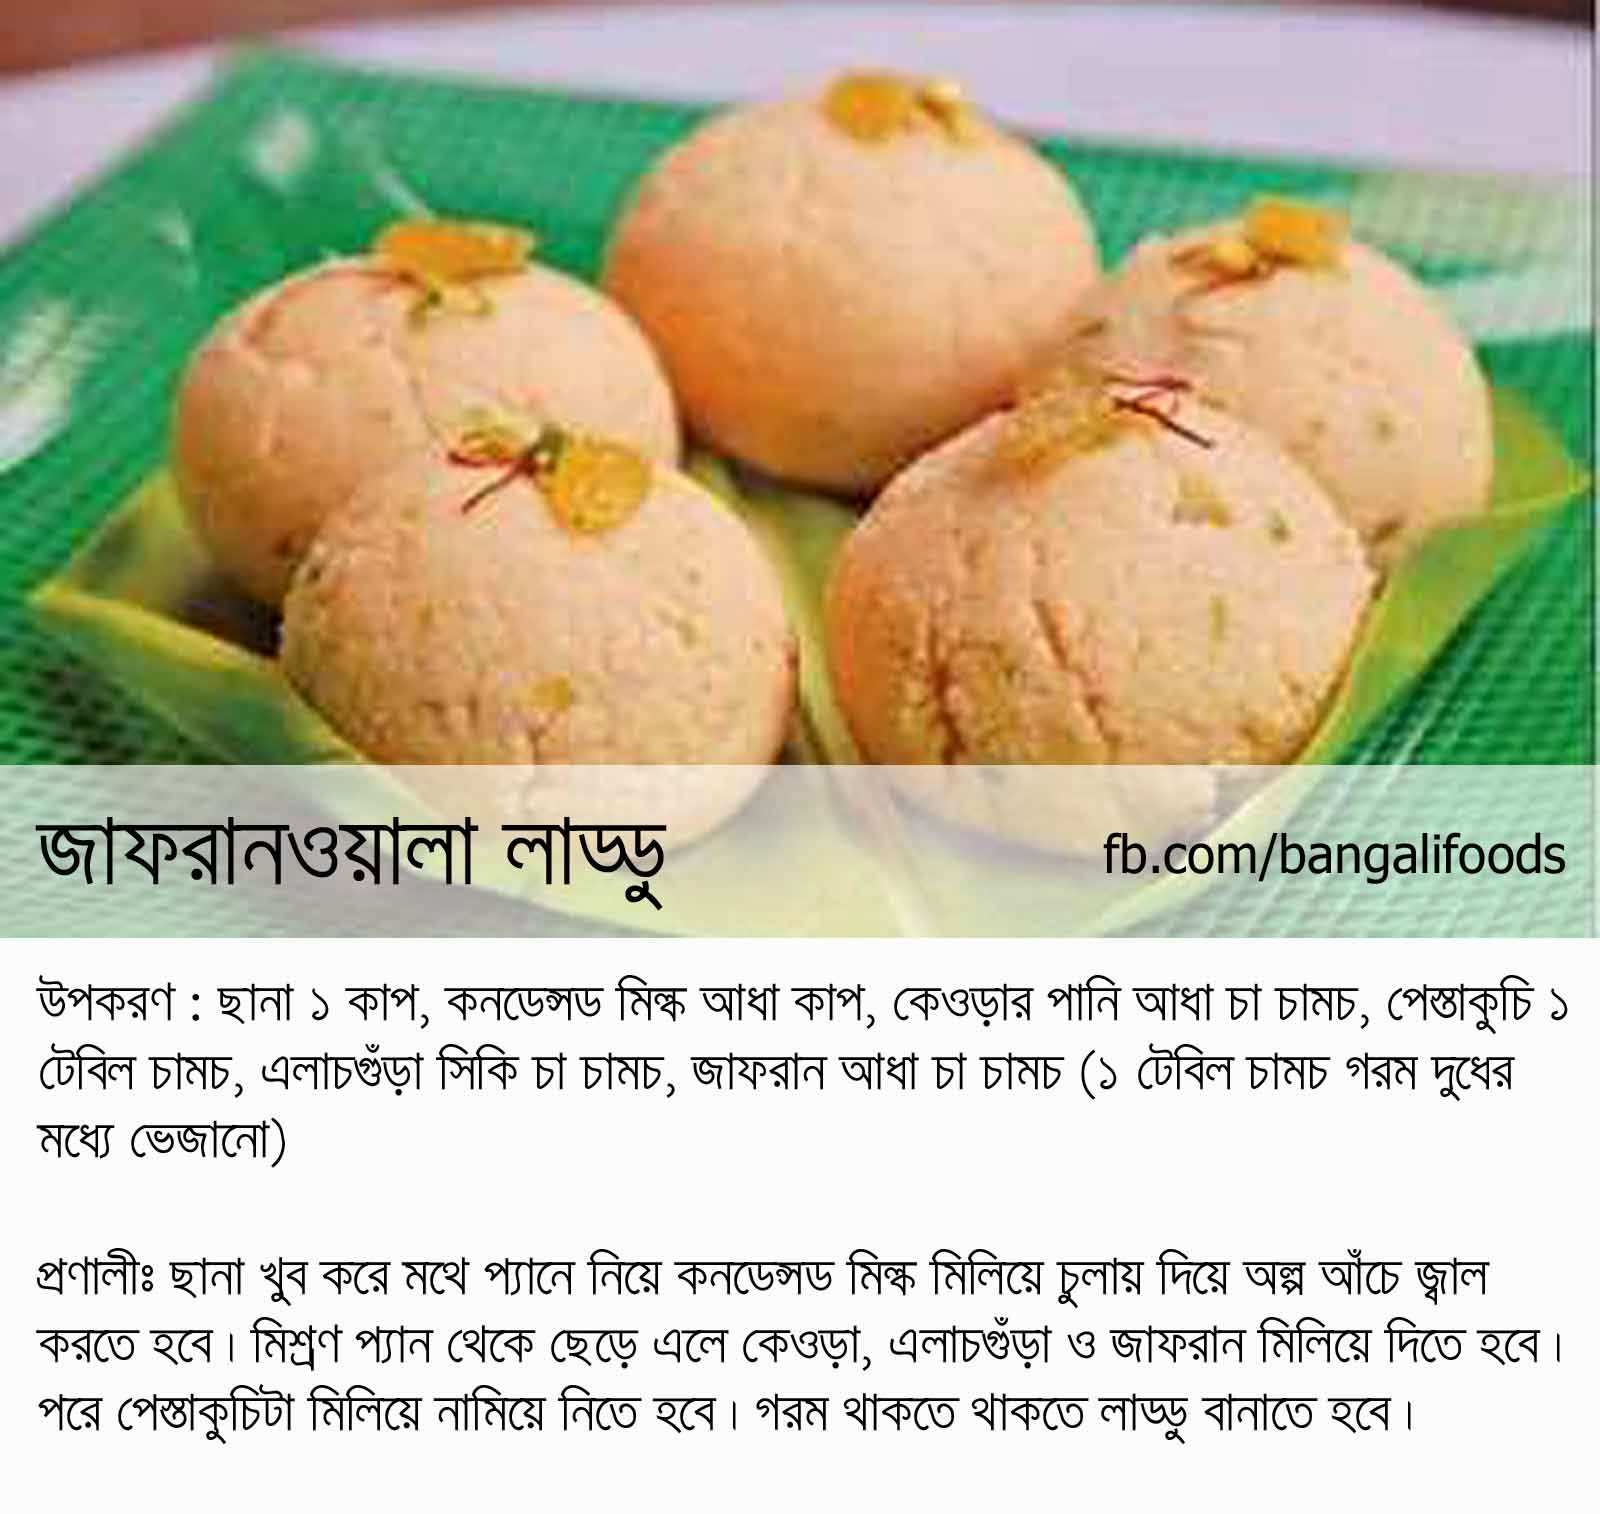 Bangali foods laddu recipes for Abduls indian bengali cuisine